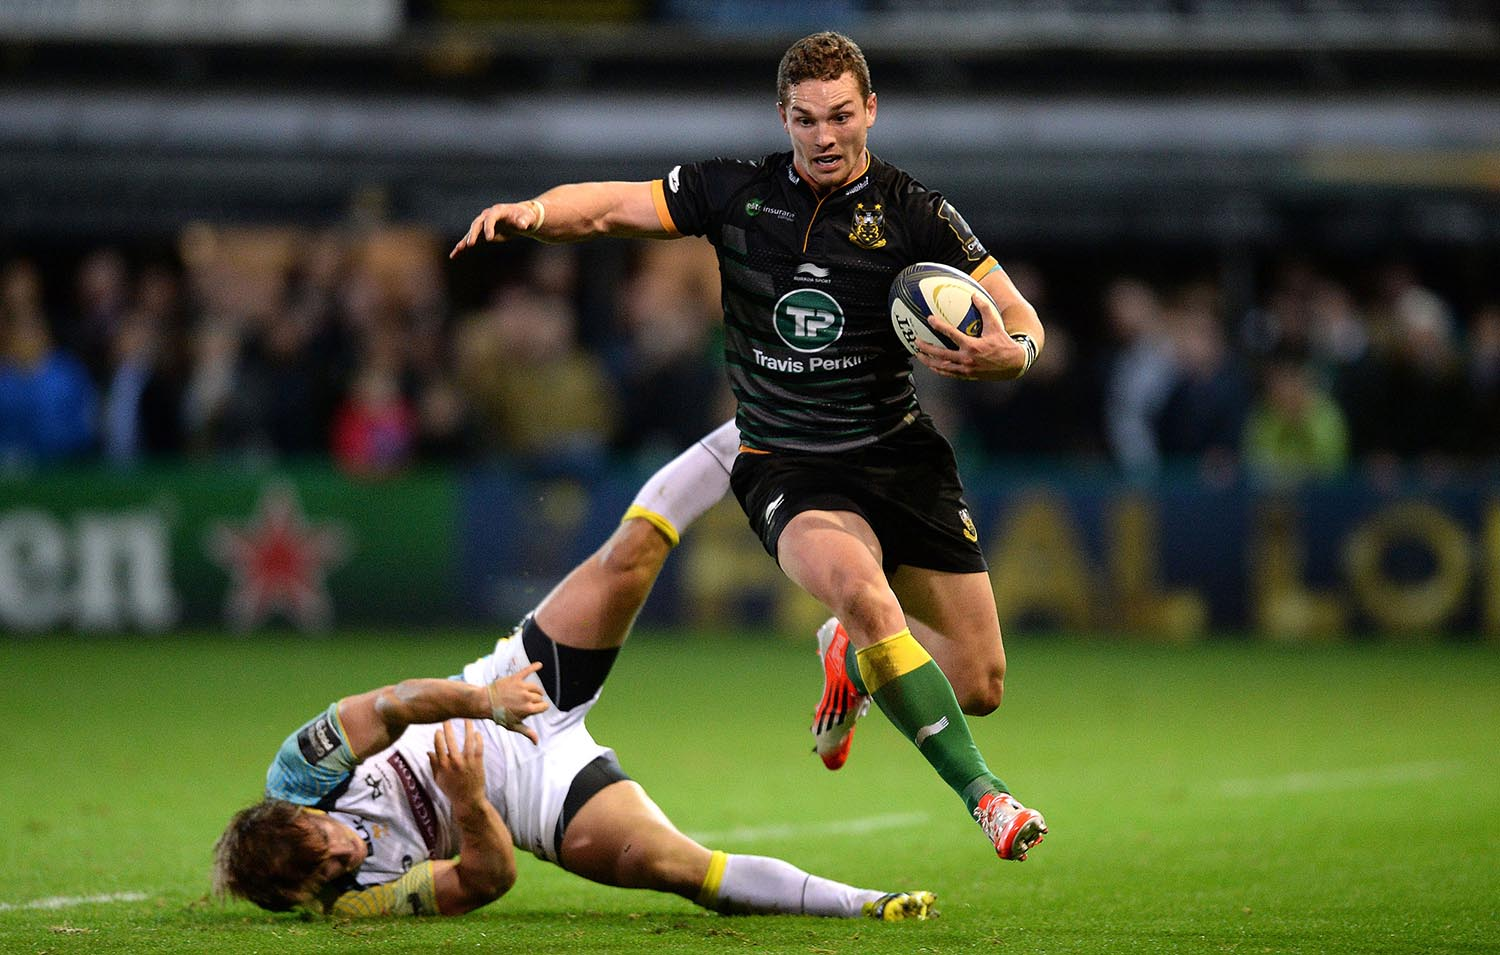 George North of Northampton is tackled by Jeff Hassler of Ospreys